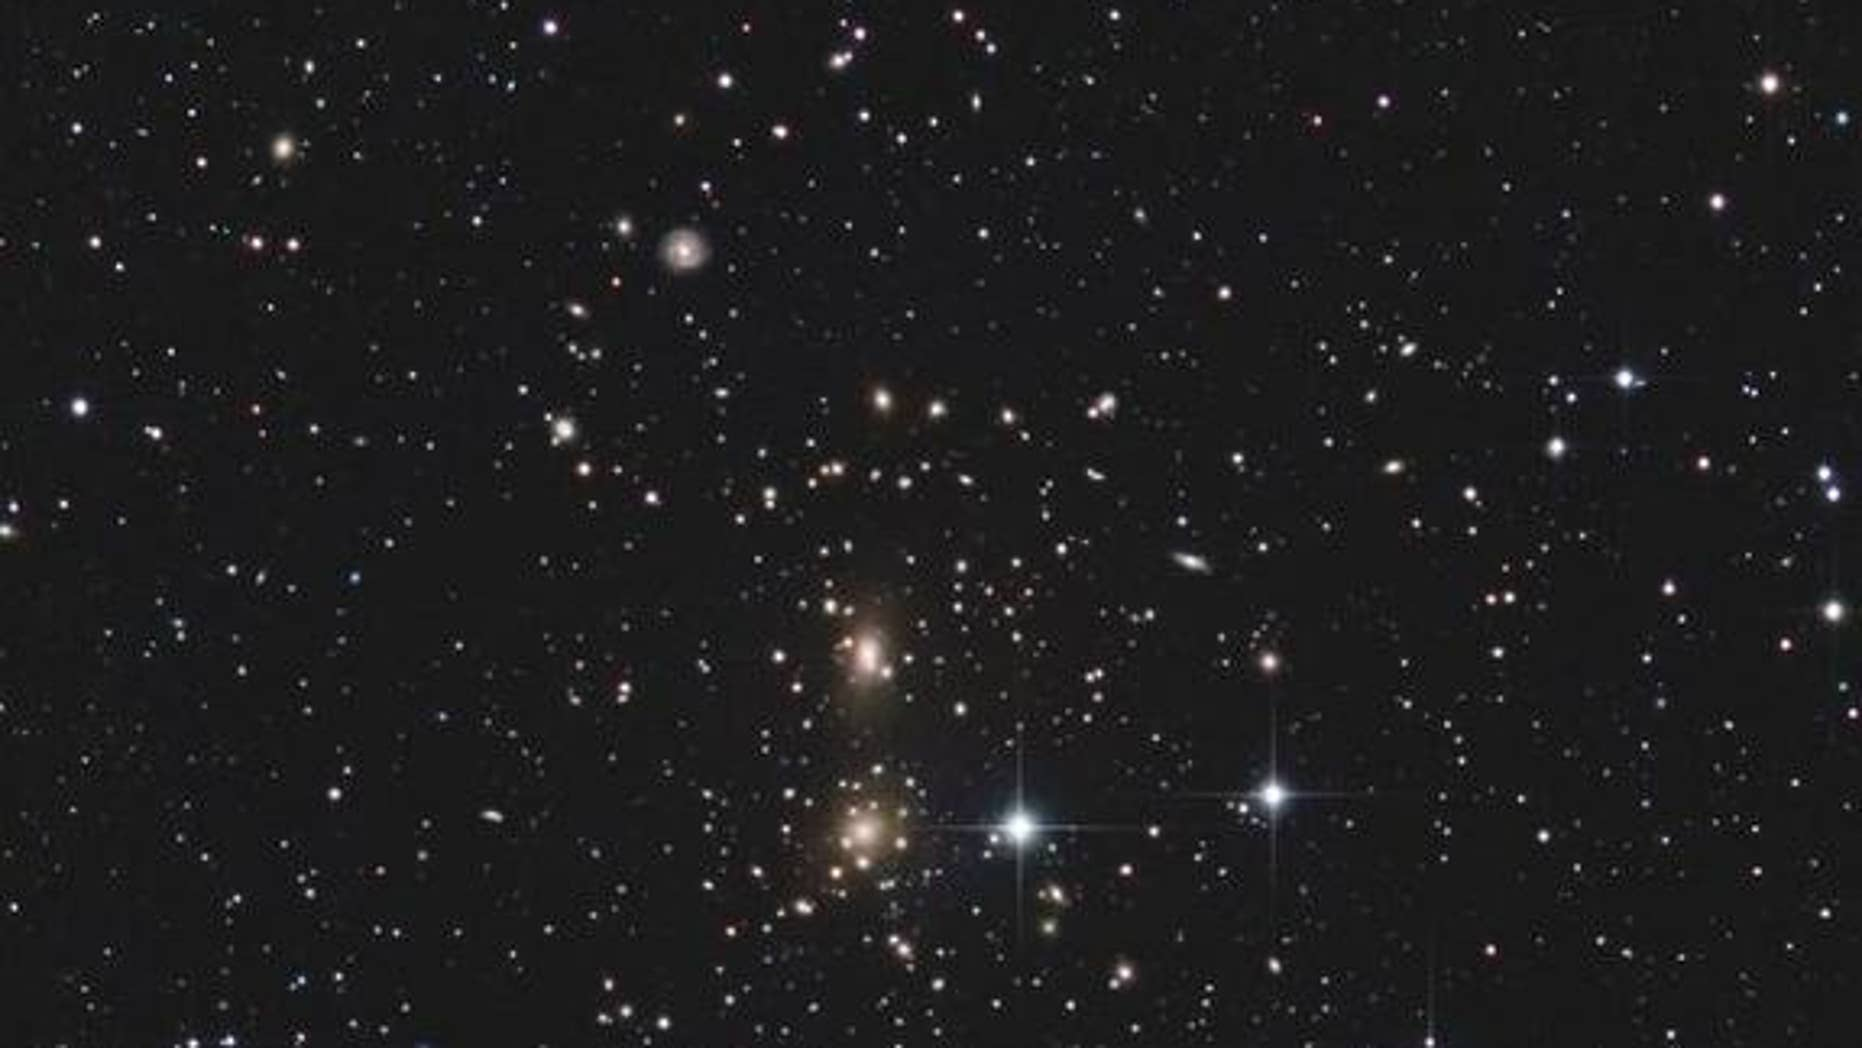 The Coma galaxy cluster is a collection of more than 650 galaxies about 300 million light-years from Earth in the constellation Coma Berenices. Also known as Abell 1656, the galaxy cluster is one of the densest ones known.